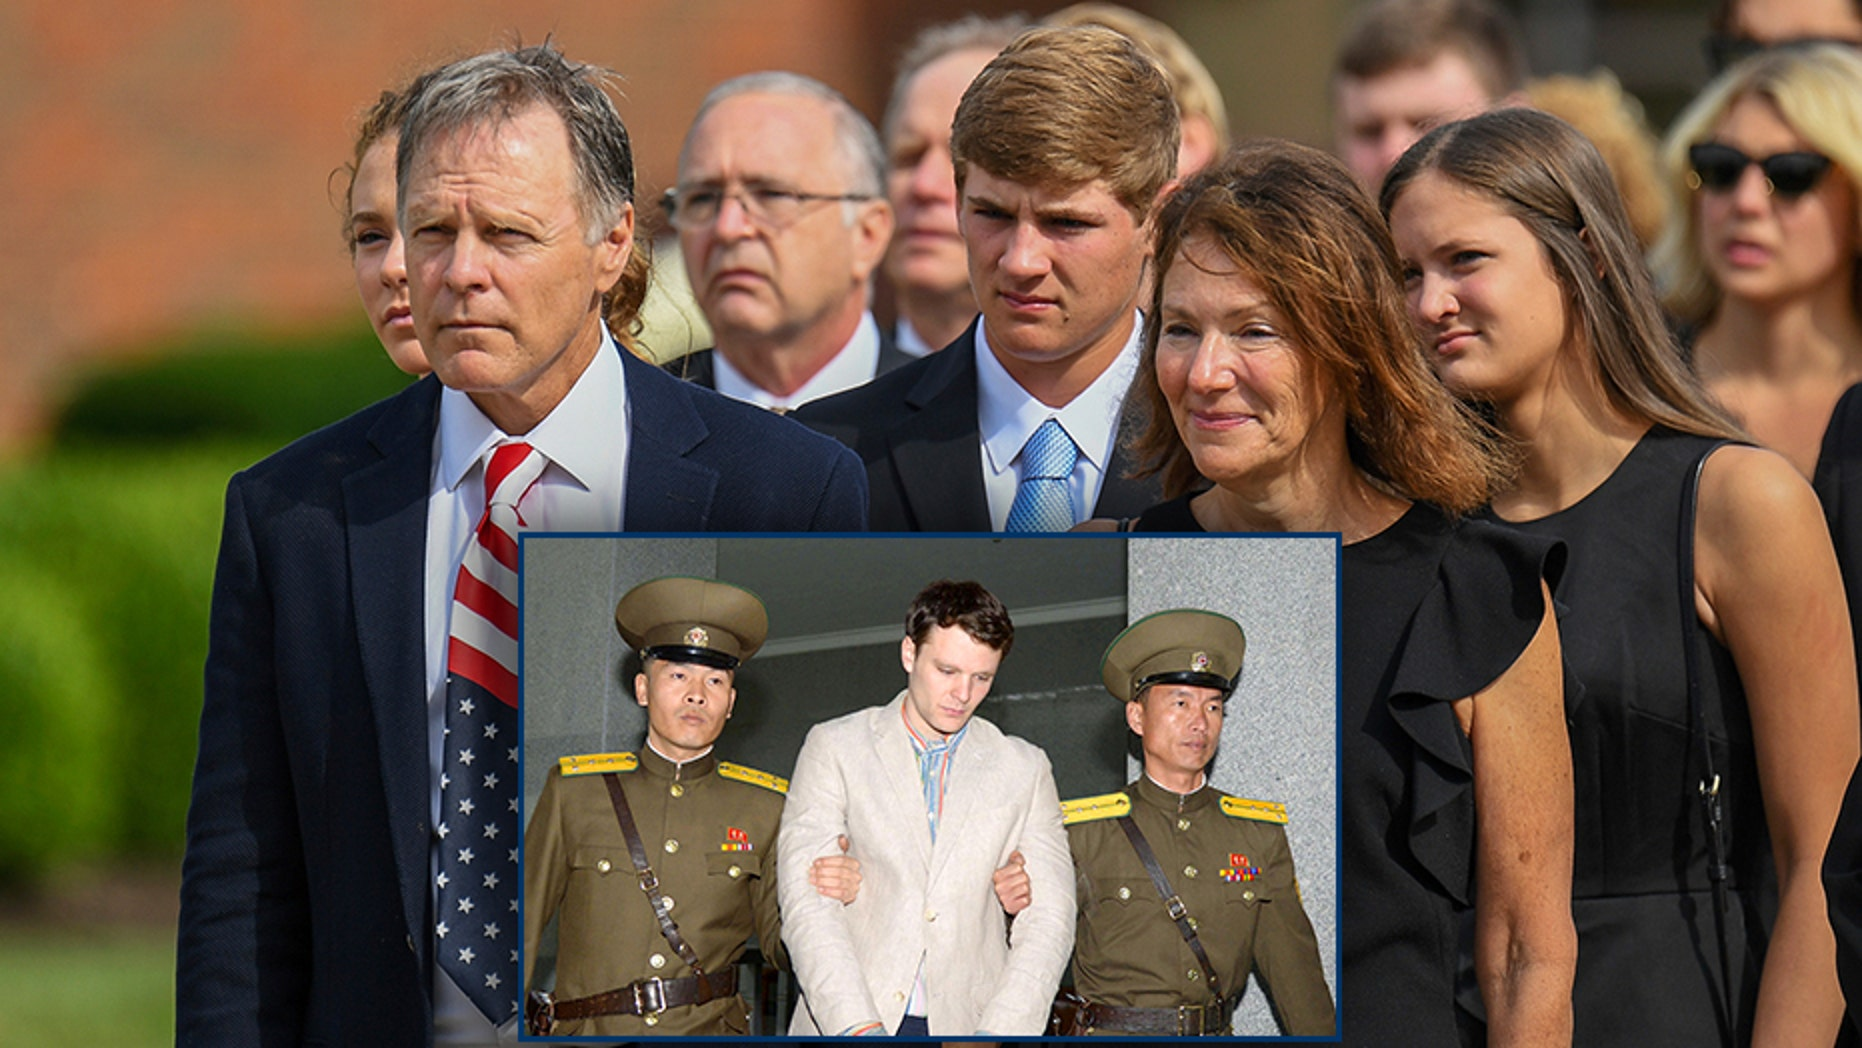 Fred And Cindy Warmbier The Parents Of Otto Warmbier An American College Student Who